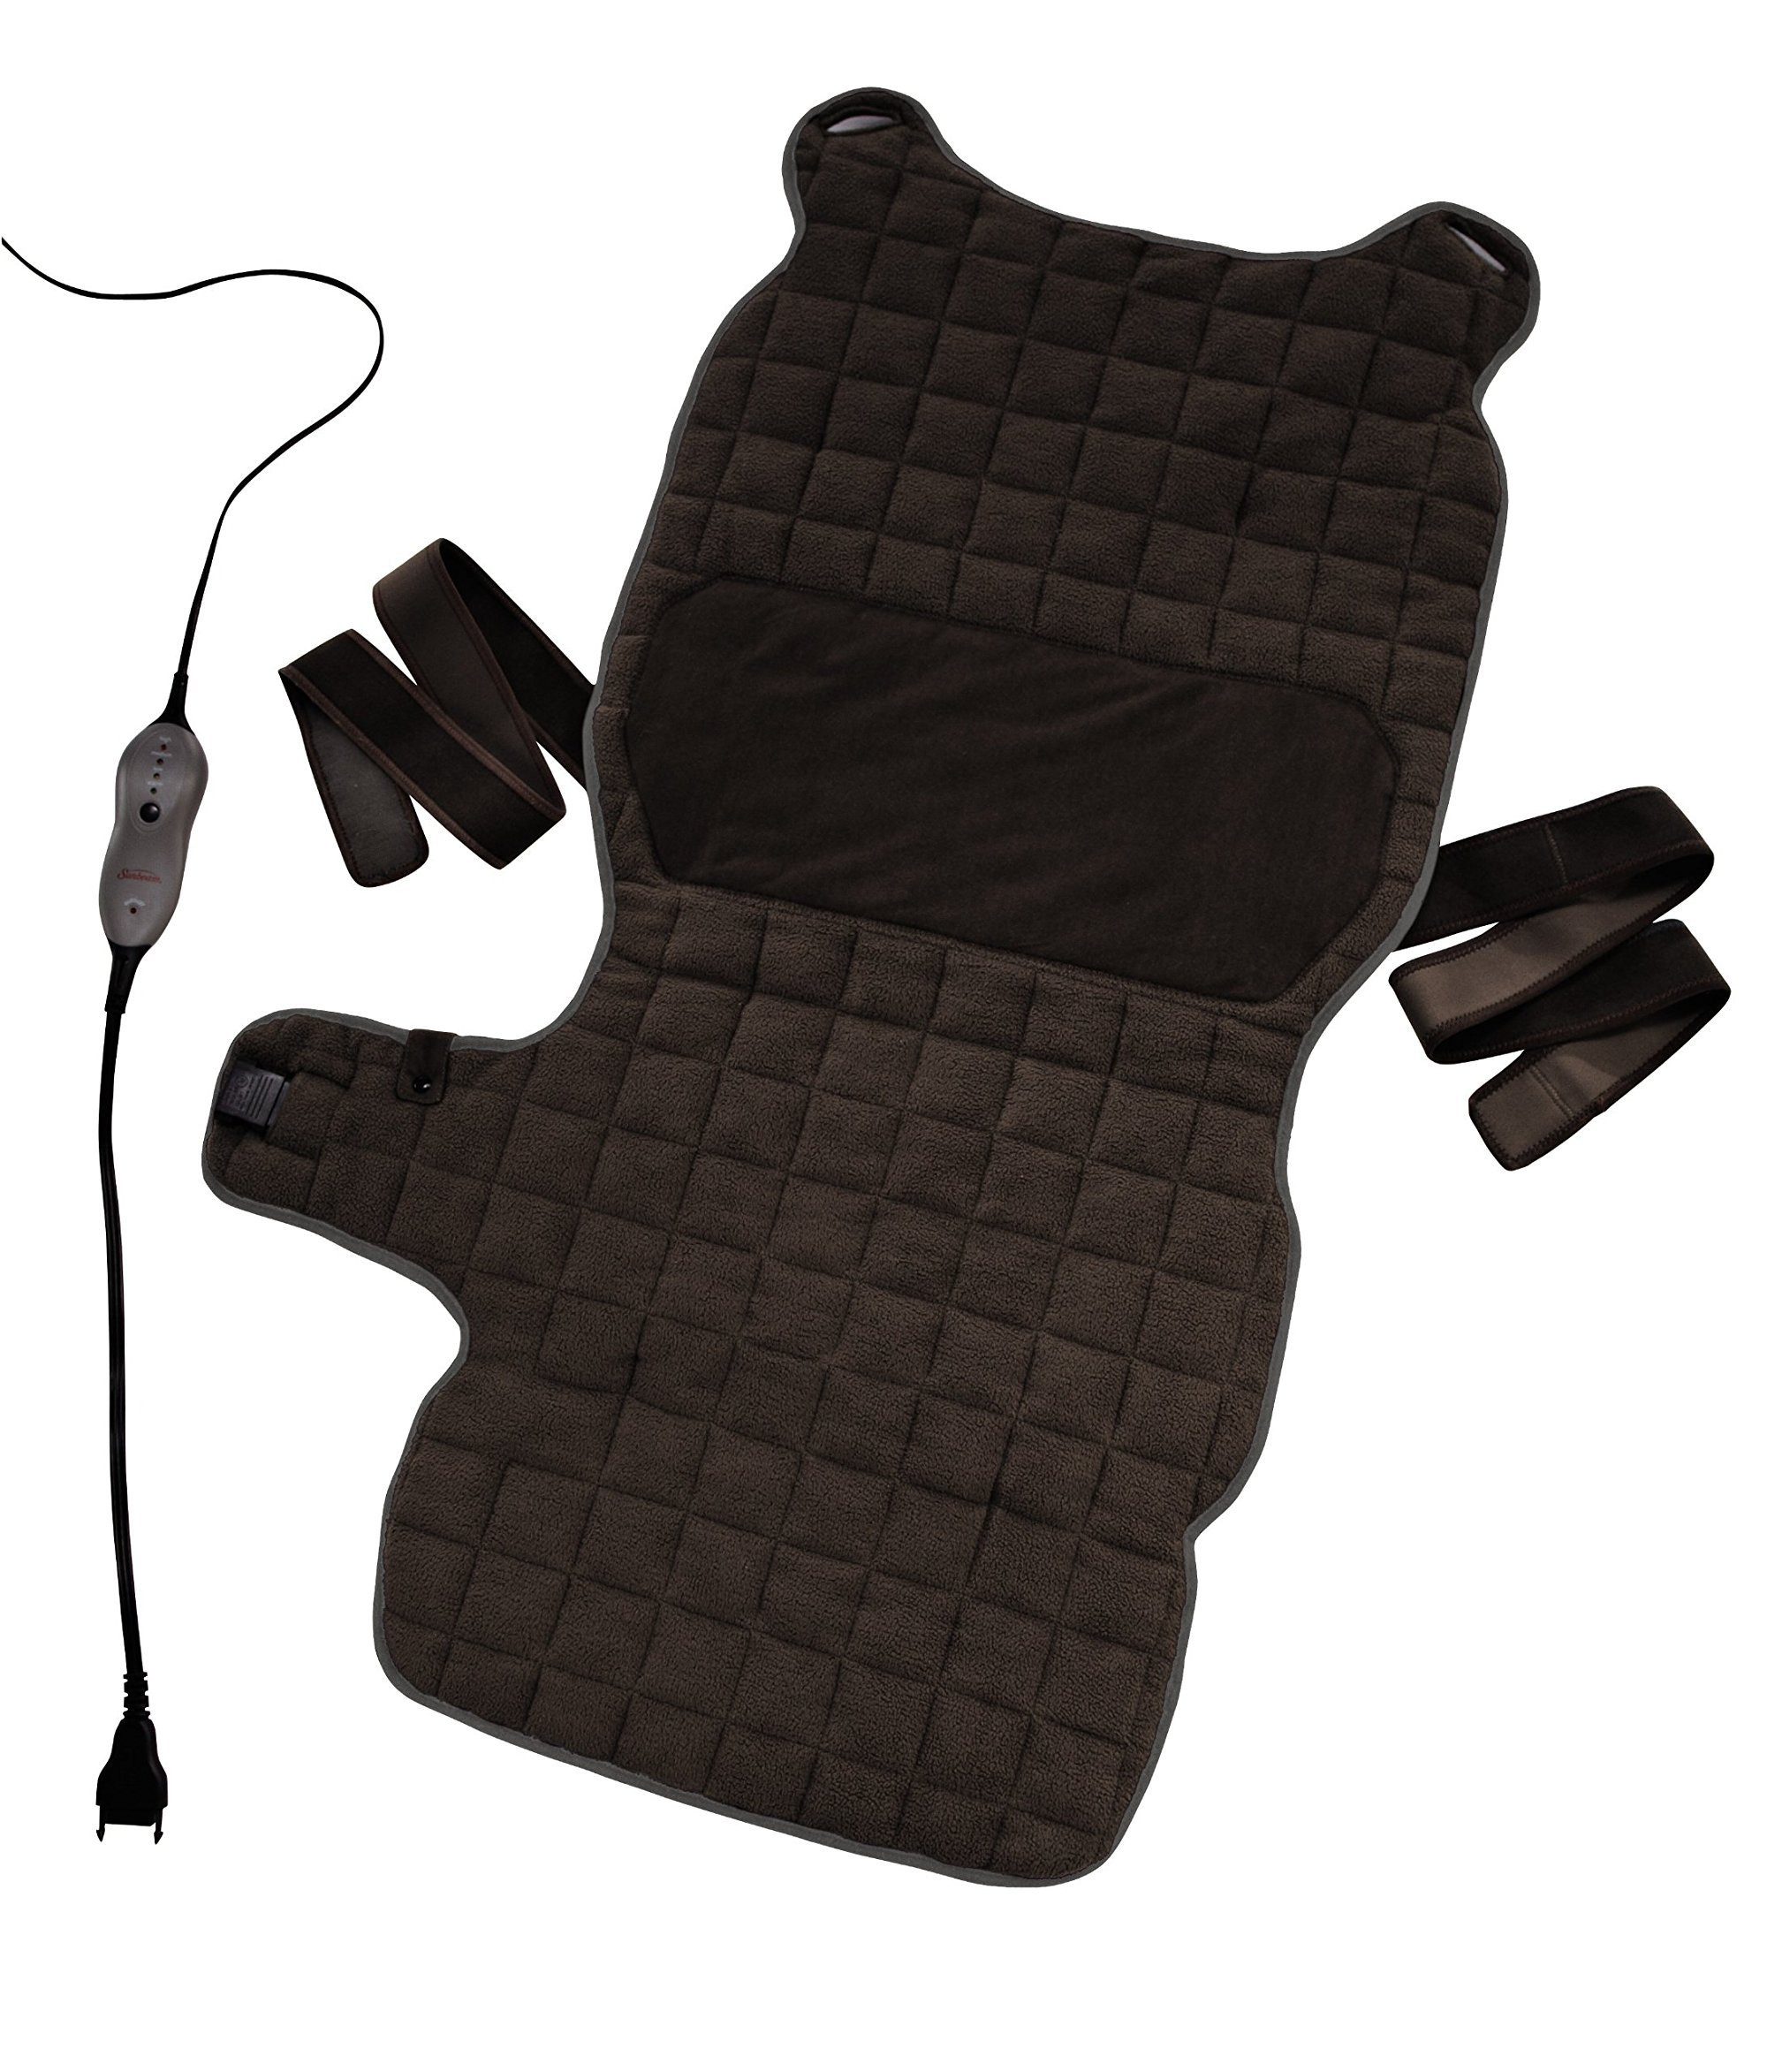 Sunbeam Renue Back and Body Warming Pad, Brown by Sunbeam